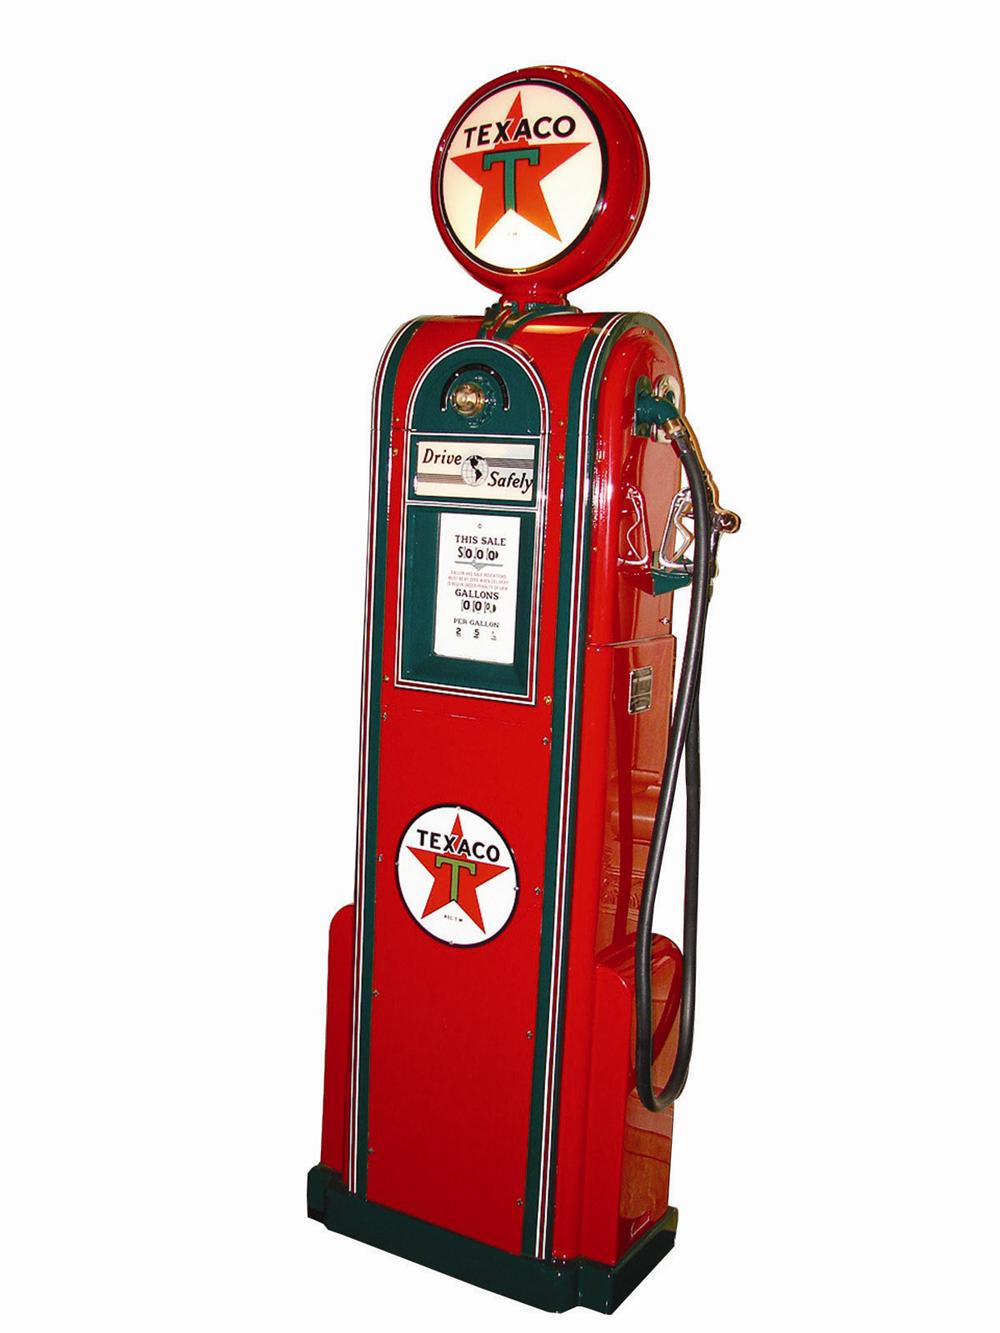 Superb 1930s Wayne 60 restored Texaco service station gas pump with station lighter attached.  To call this superb would be ... - Front 3/4 - 82286